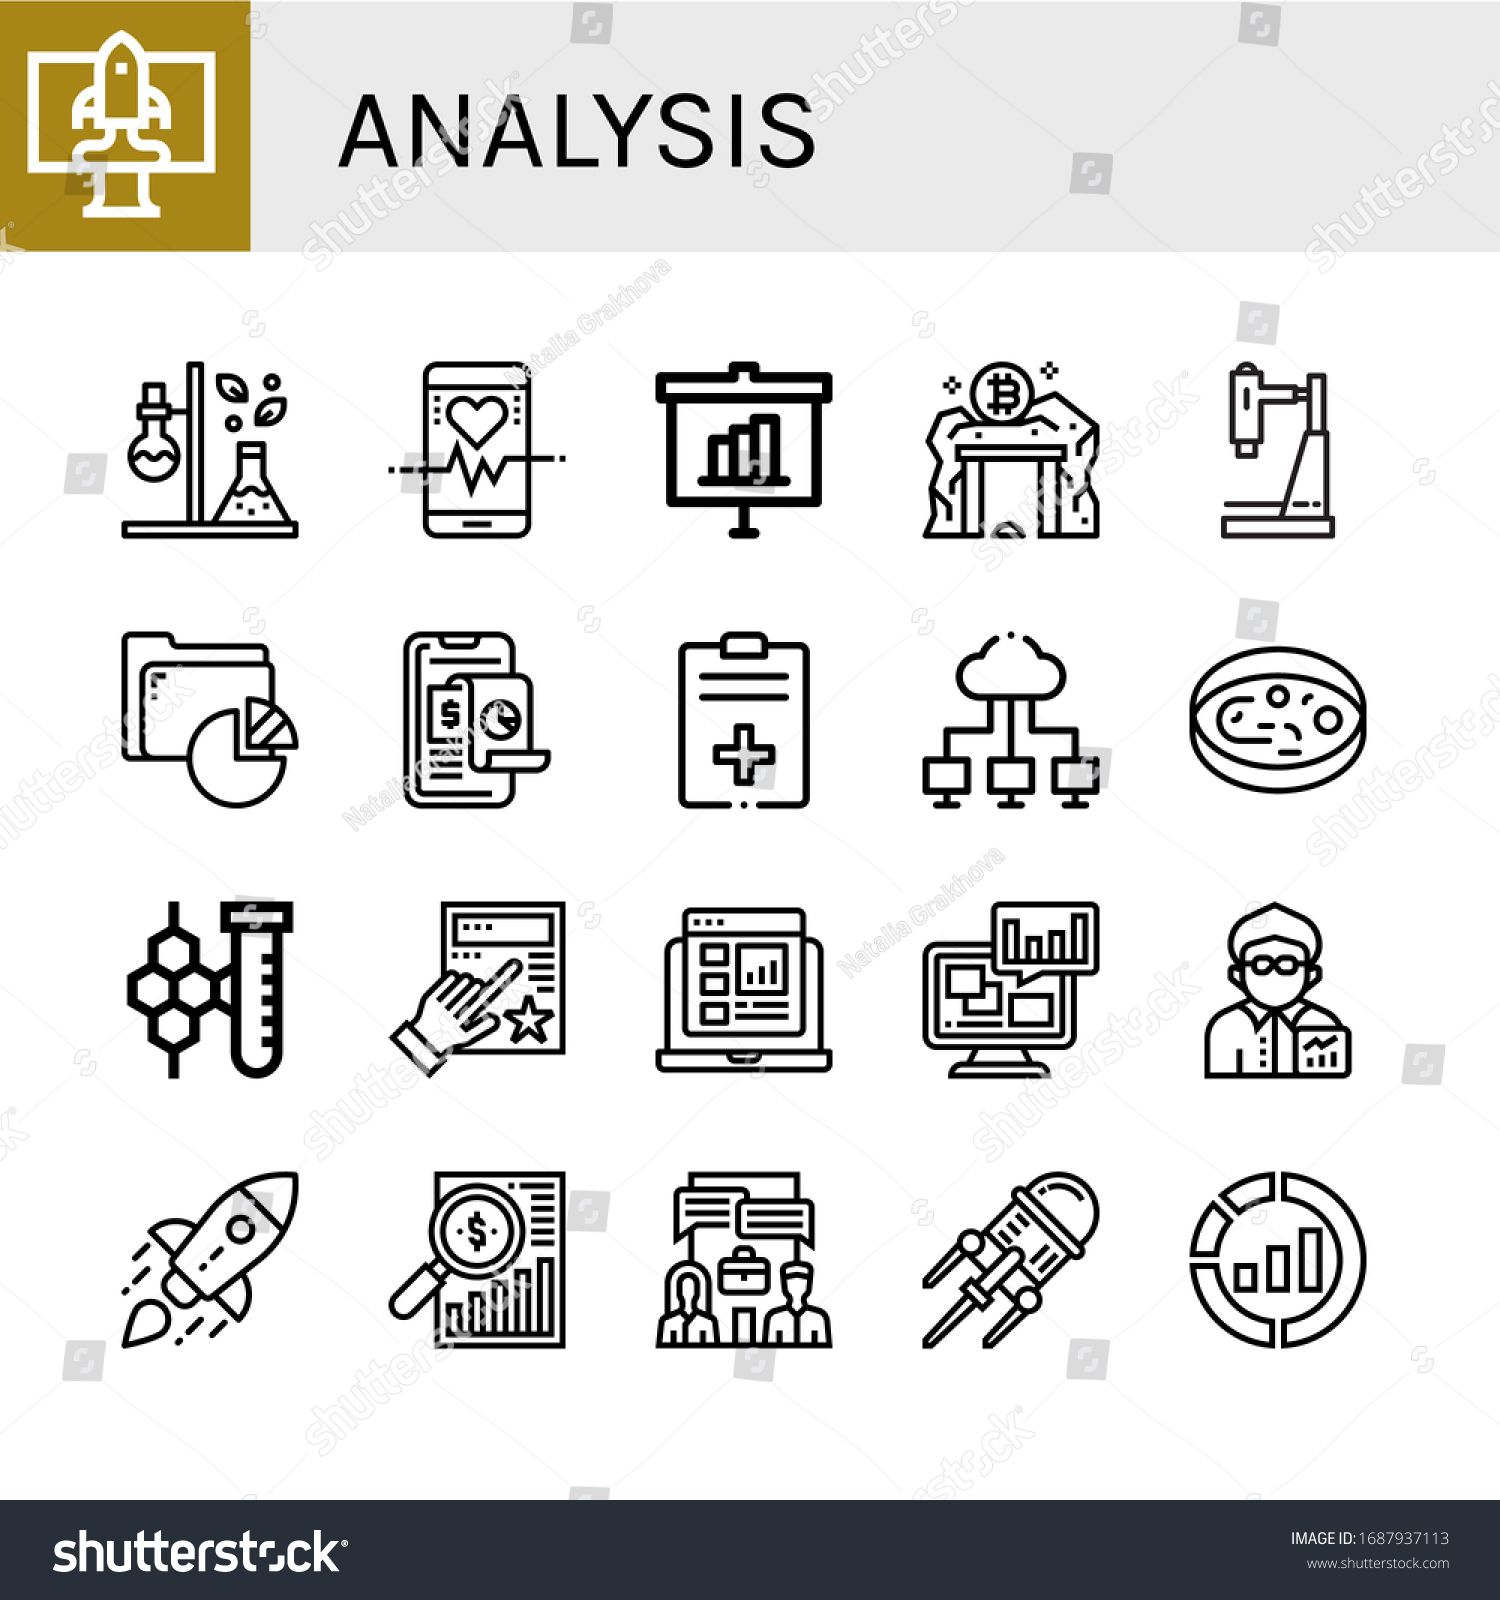 Set of analysis icons. Such as Startup, Test tube, Heart